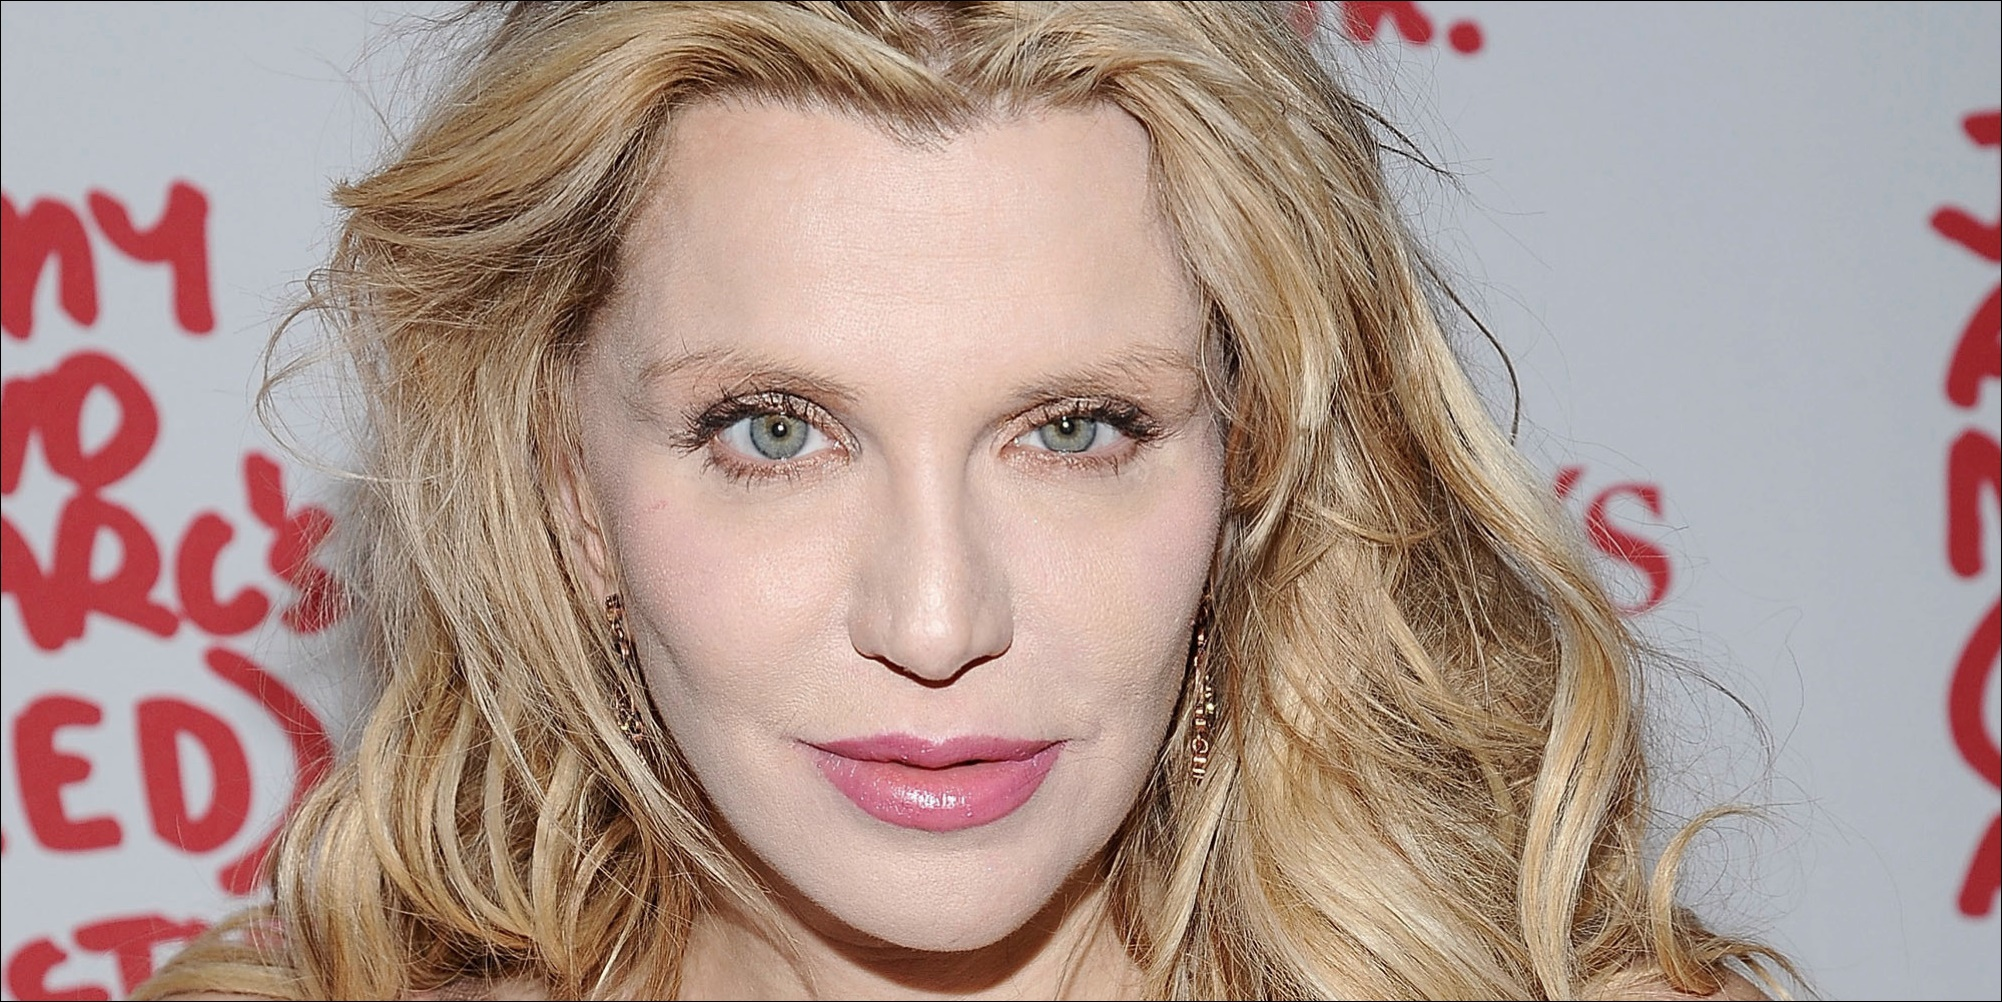 Courtney Love Nase Job Plastische Chirurgie vor und nach Fotos